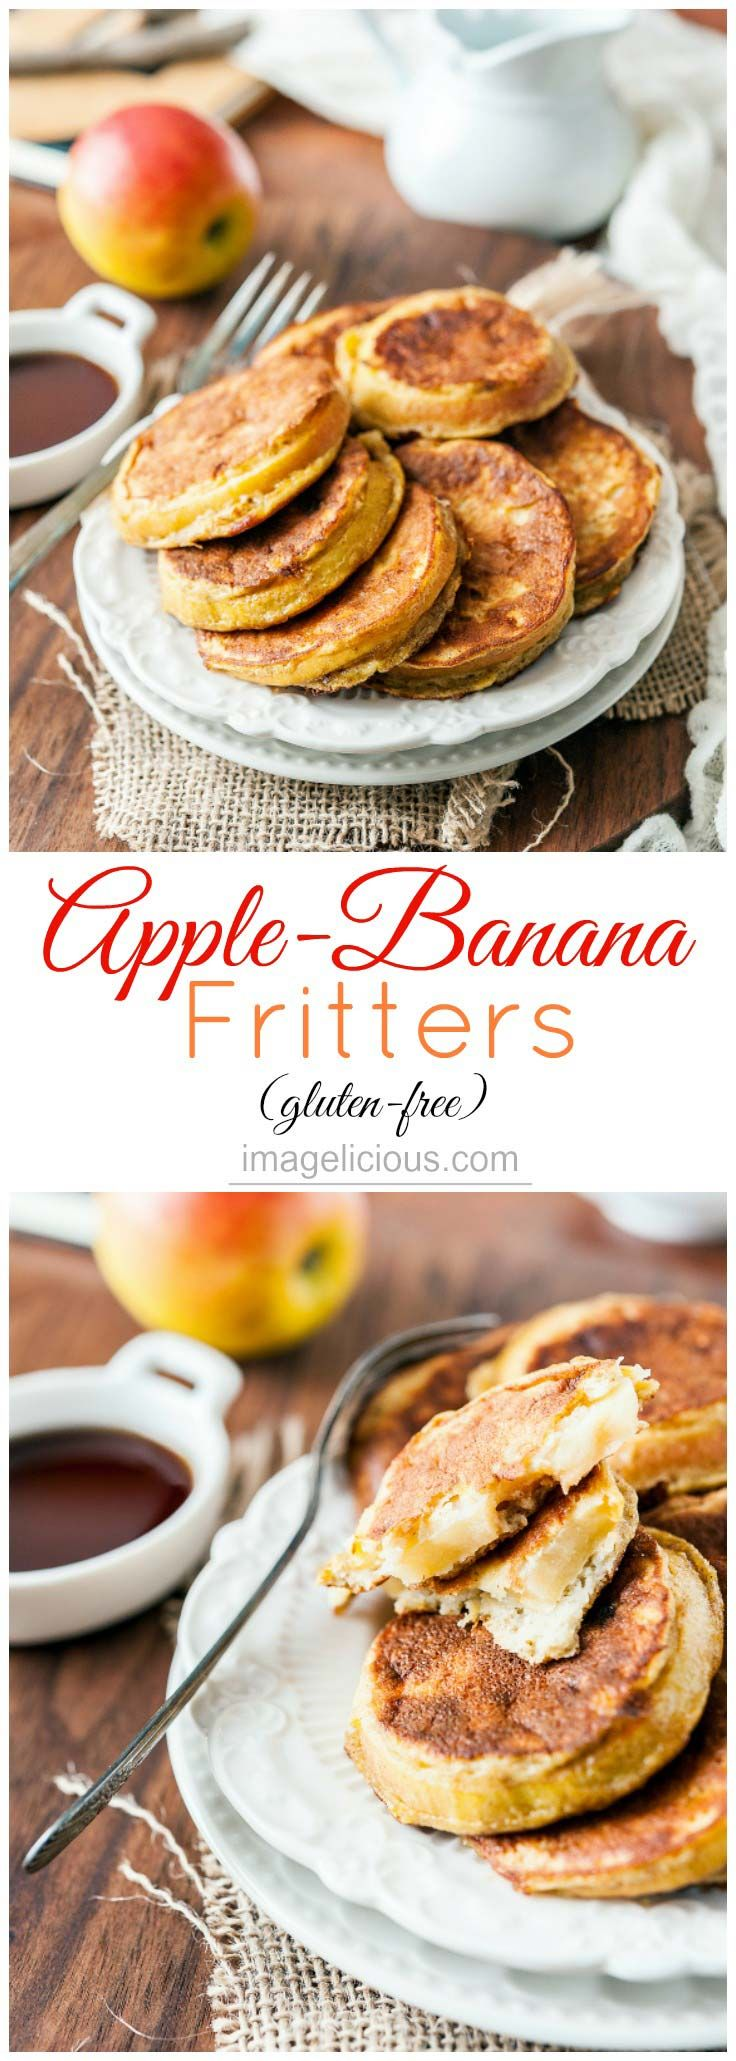 Apple Banana Fritters taste like dessert but are perfect for a healthy breakfast. They are gluten-free, easy to make and have only a handful of ingredients   Imagelicious